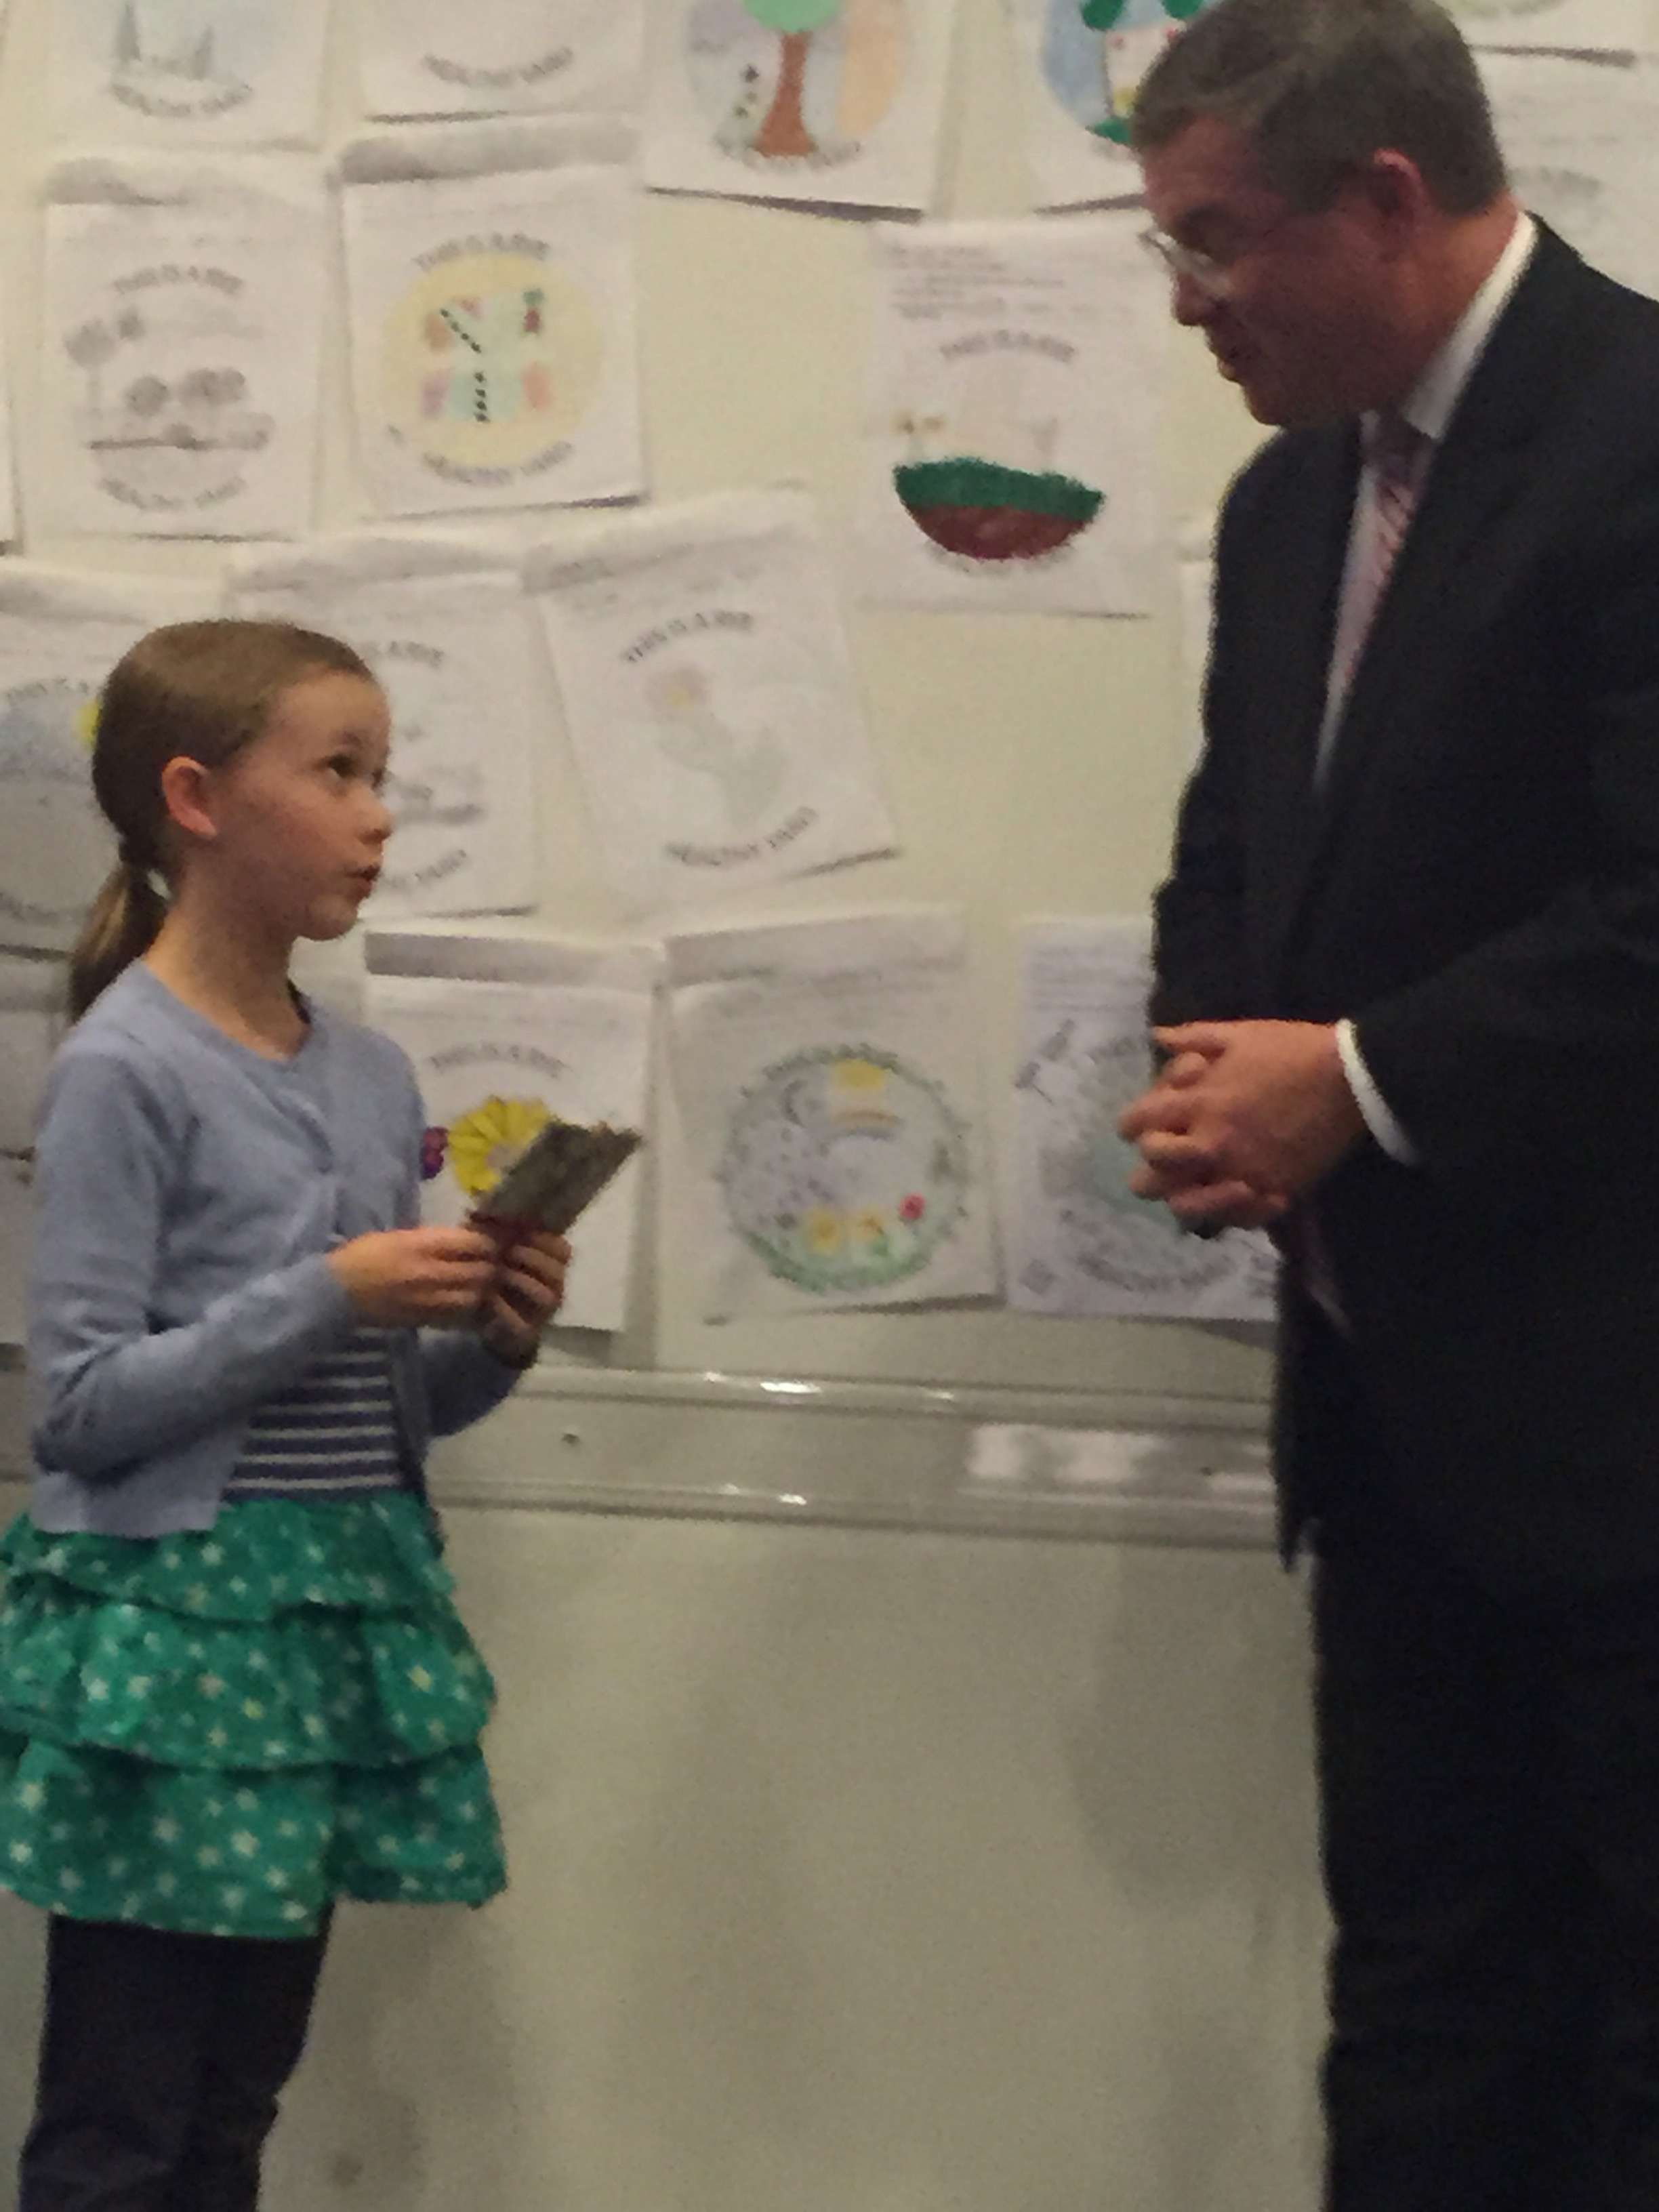 Grand Prize winner Liv McNamara explains to Mayor Sack how she came up with the winning design.